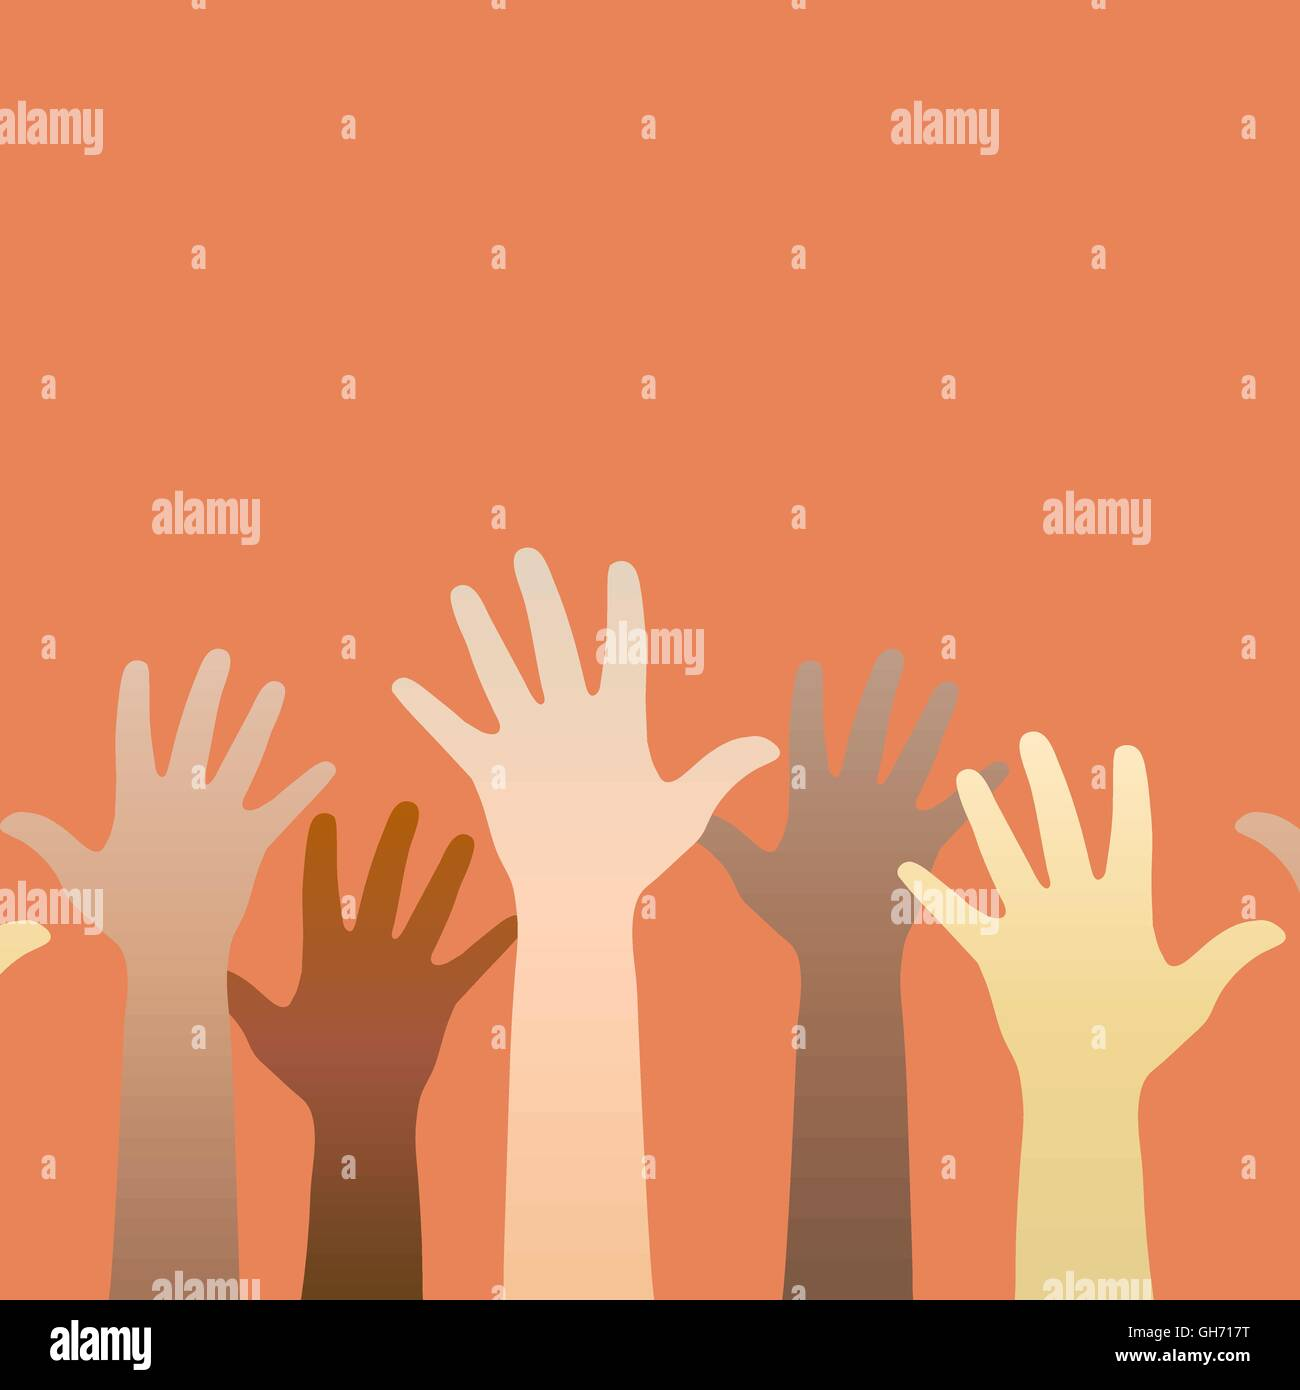 Hands raised up. Concept of volunteerism, multi-ethnicity, equality, racial and social issues. Vector illustration - Stock Vector